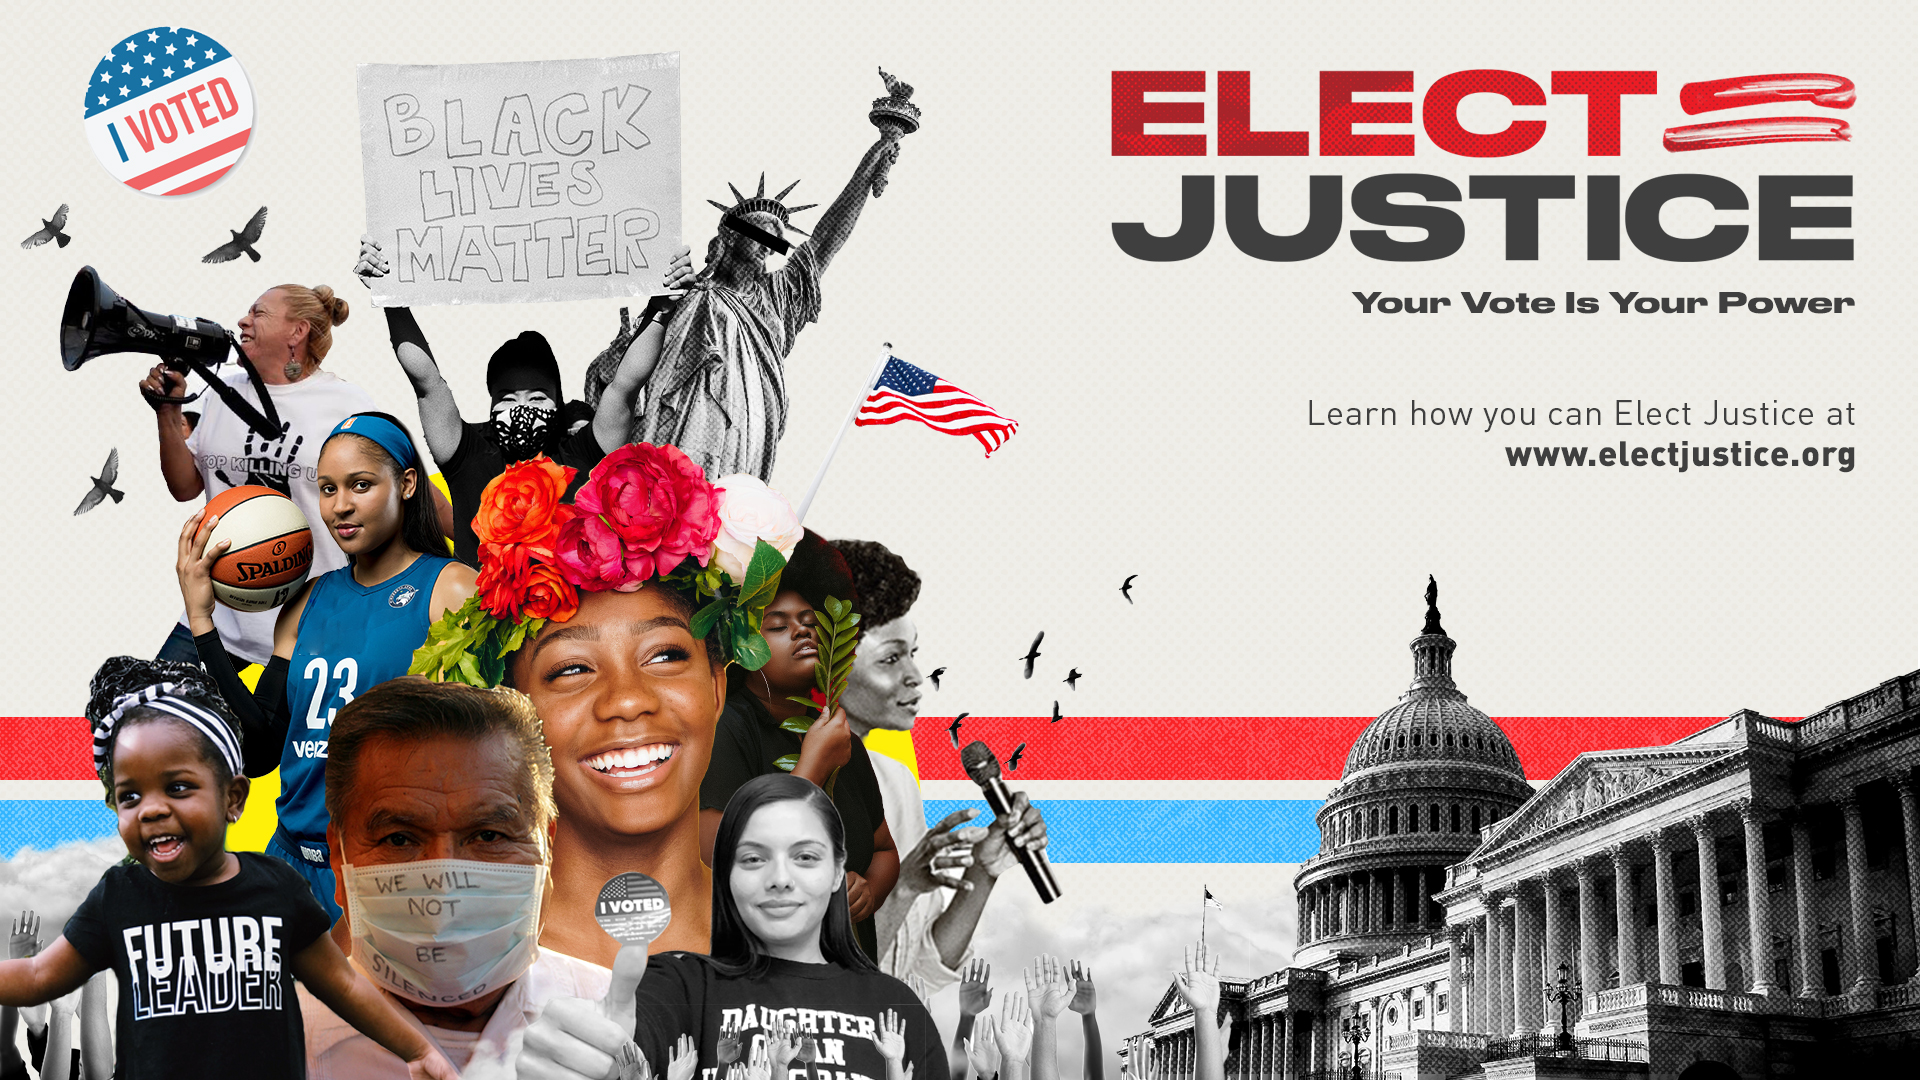 Elect Justice